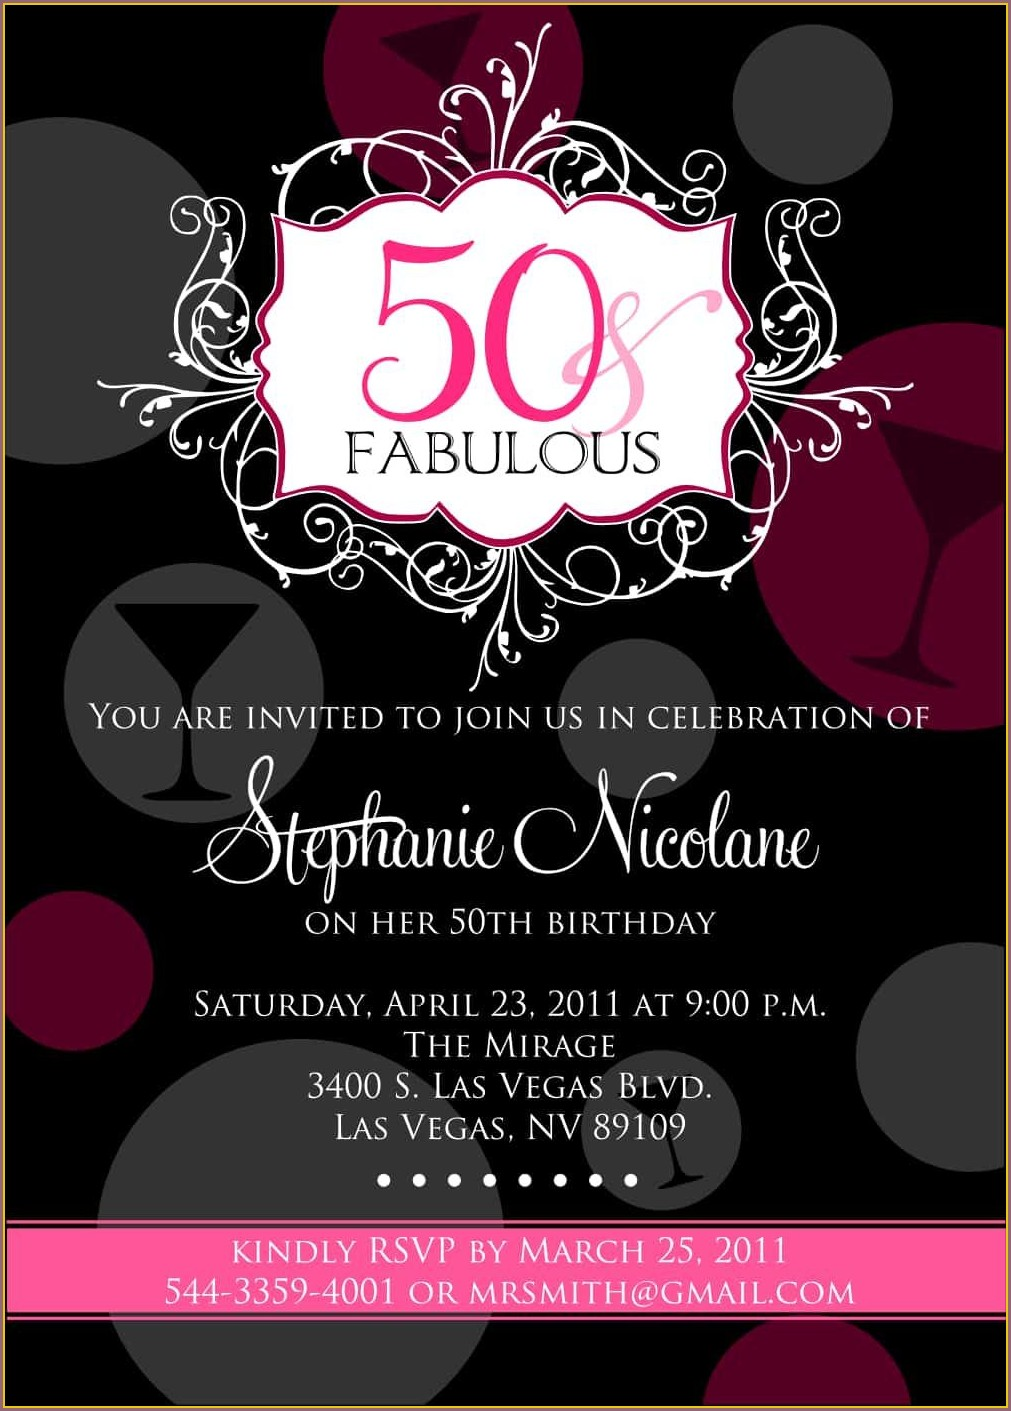 50th Birthday Invitations For Her Templates